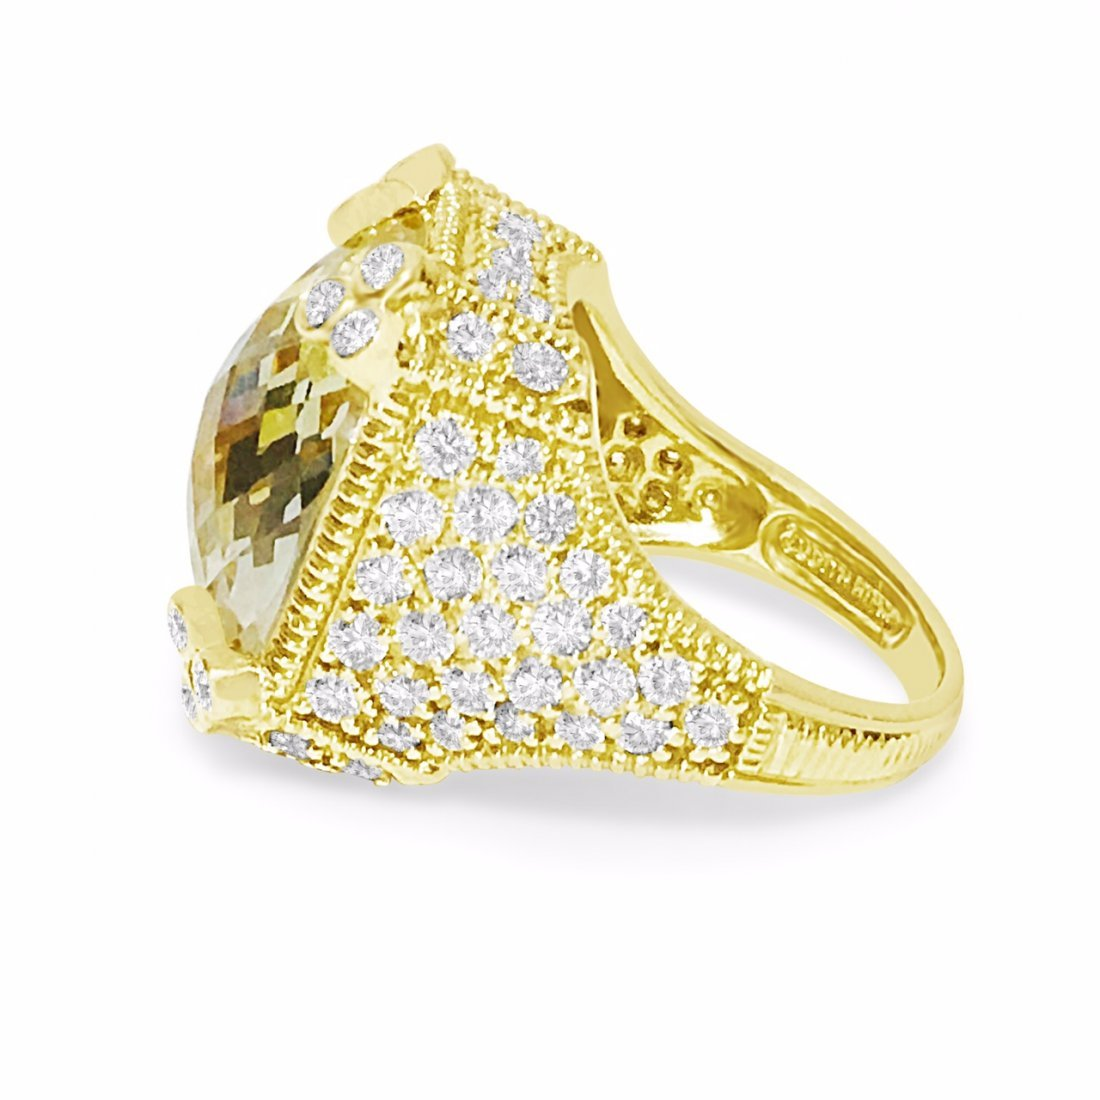 18K Gold, 25 CT Natural Yellow Stone and Diamond Ring - 2